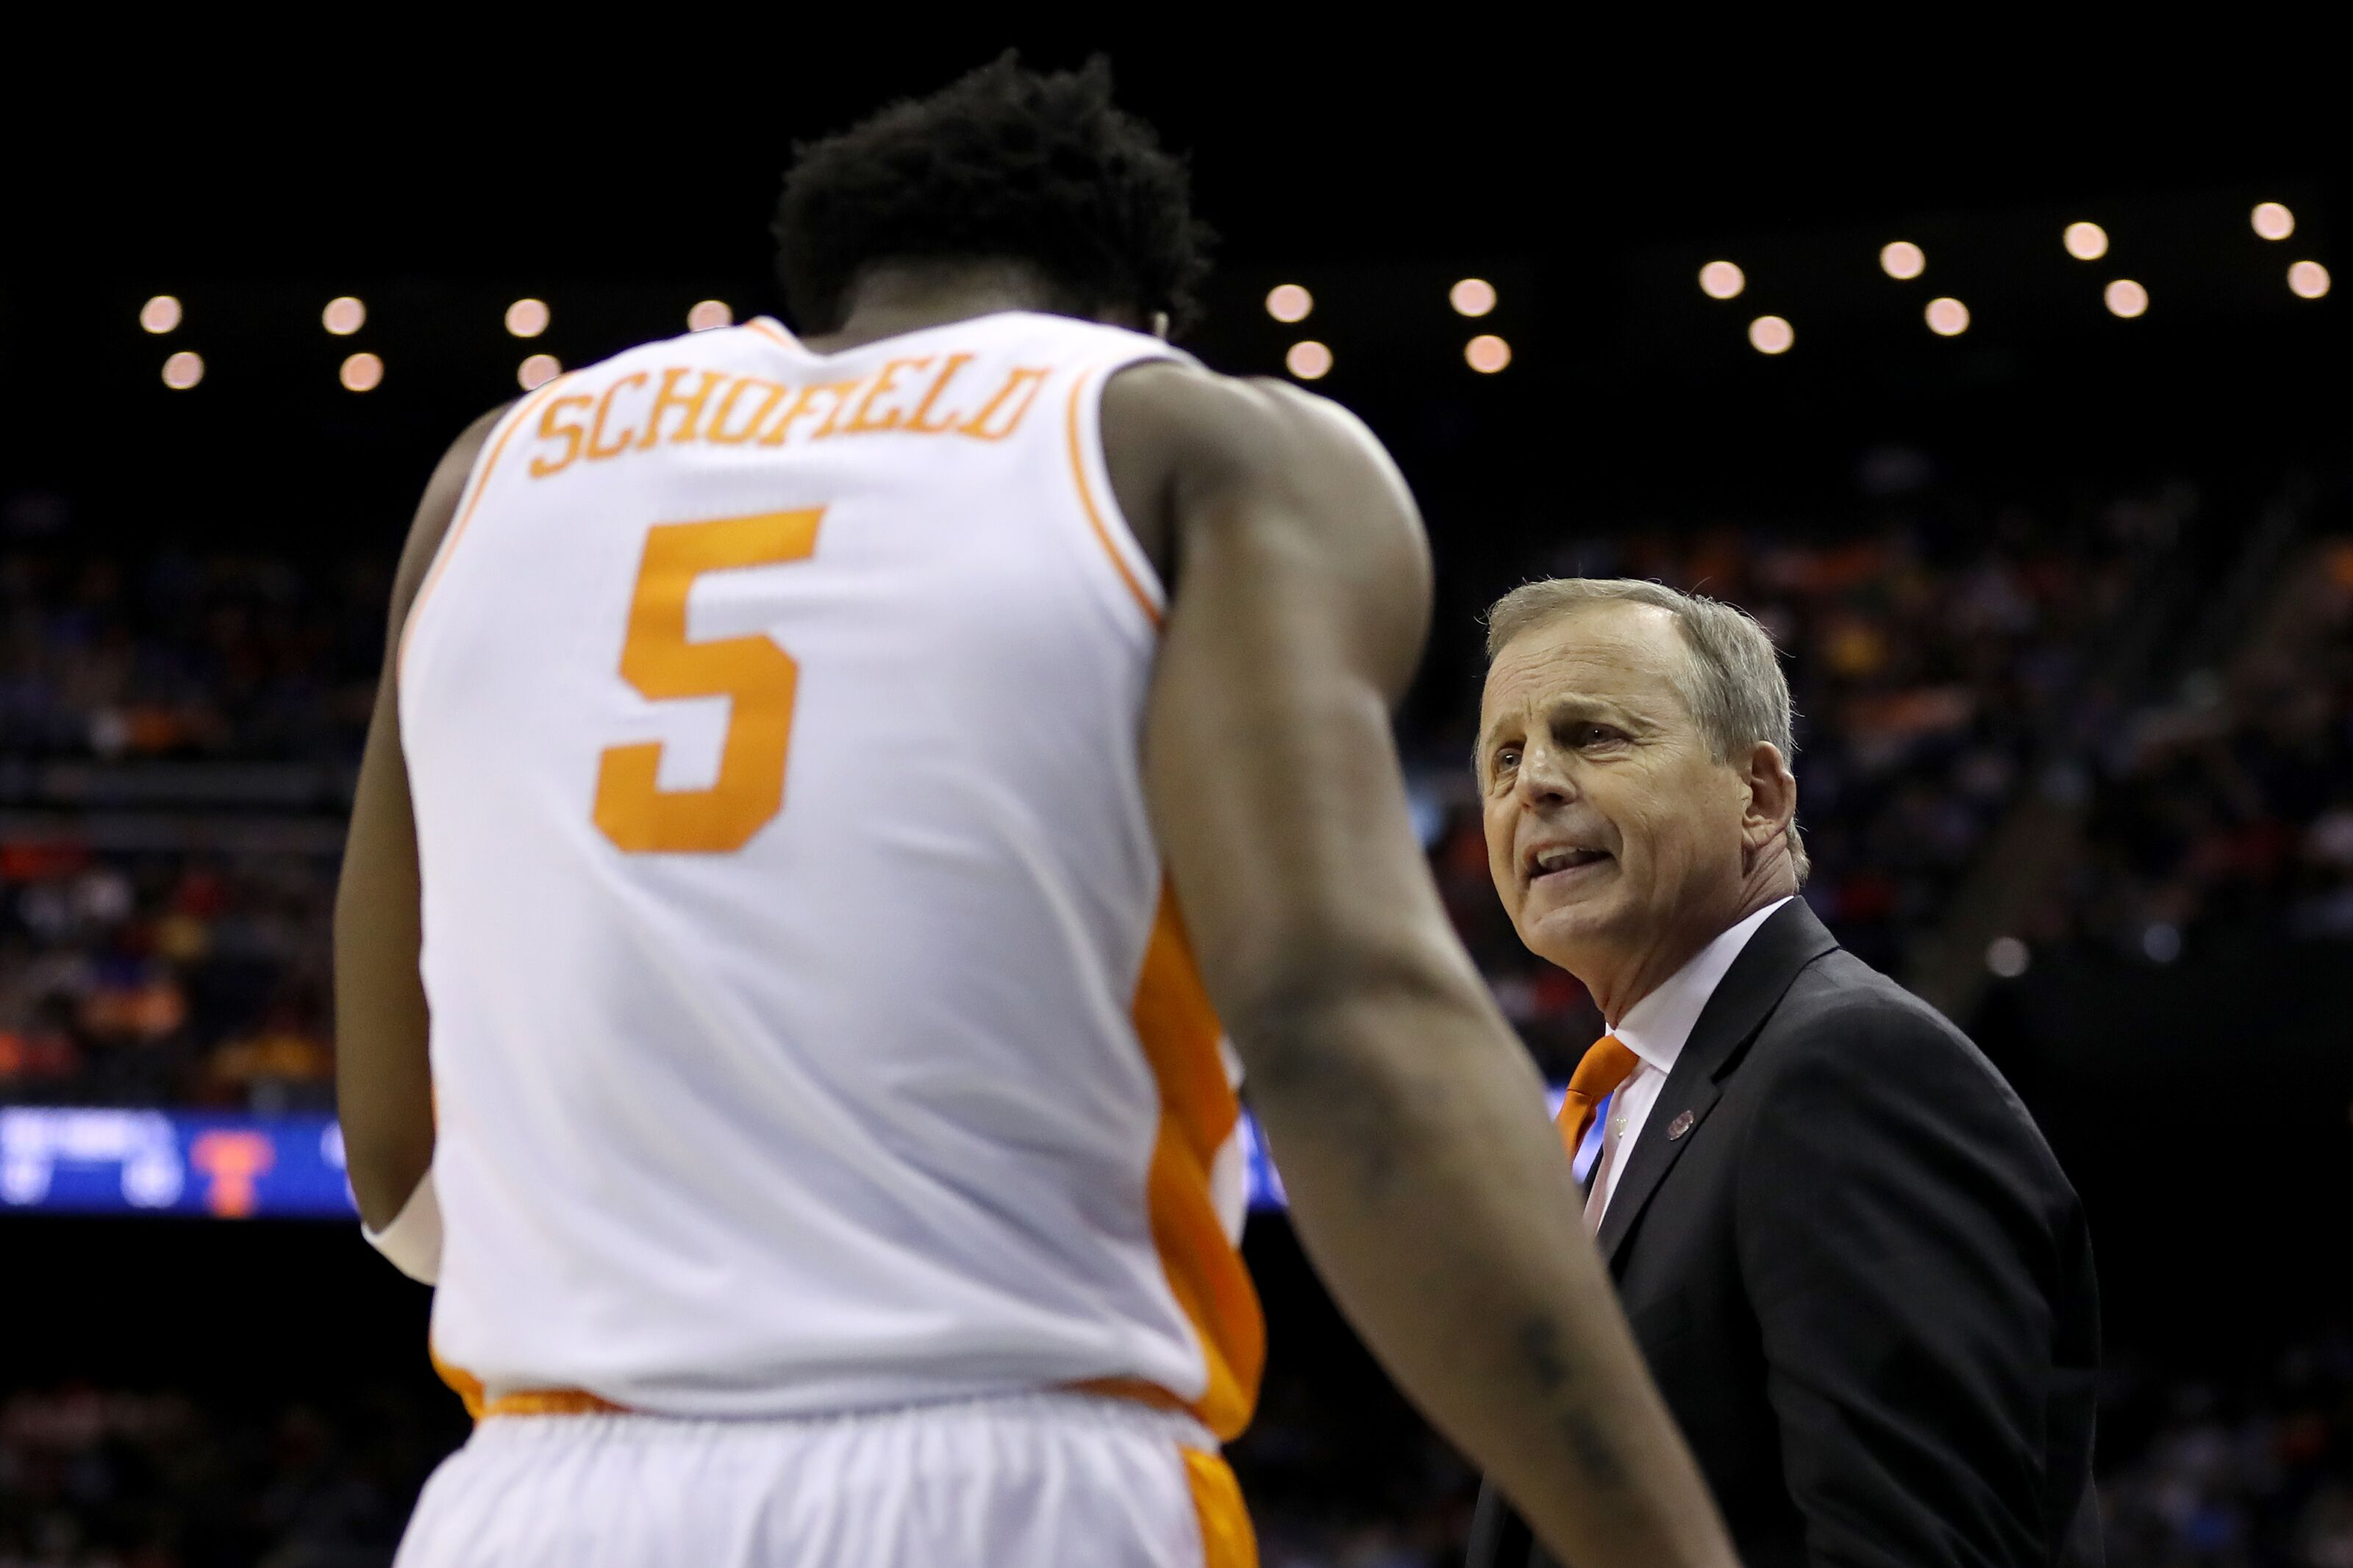 Tennessee basketball: Admiral Schofield's late-game decisions are concerning for Vols